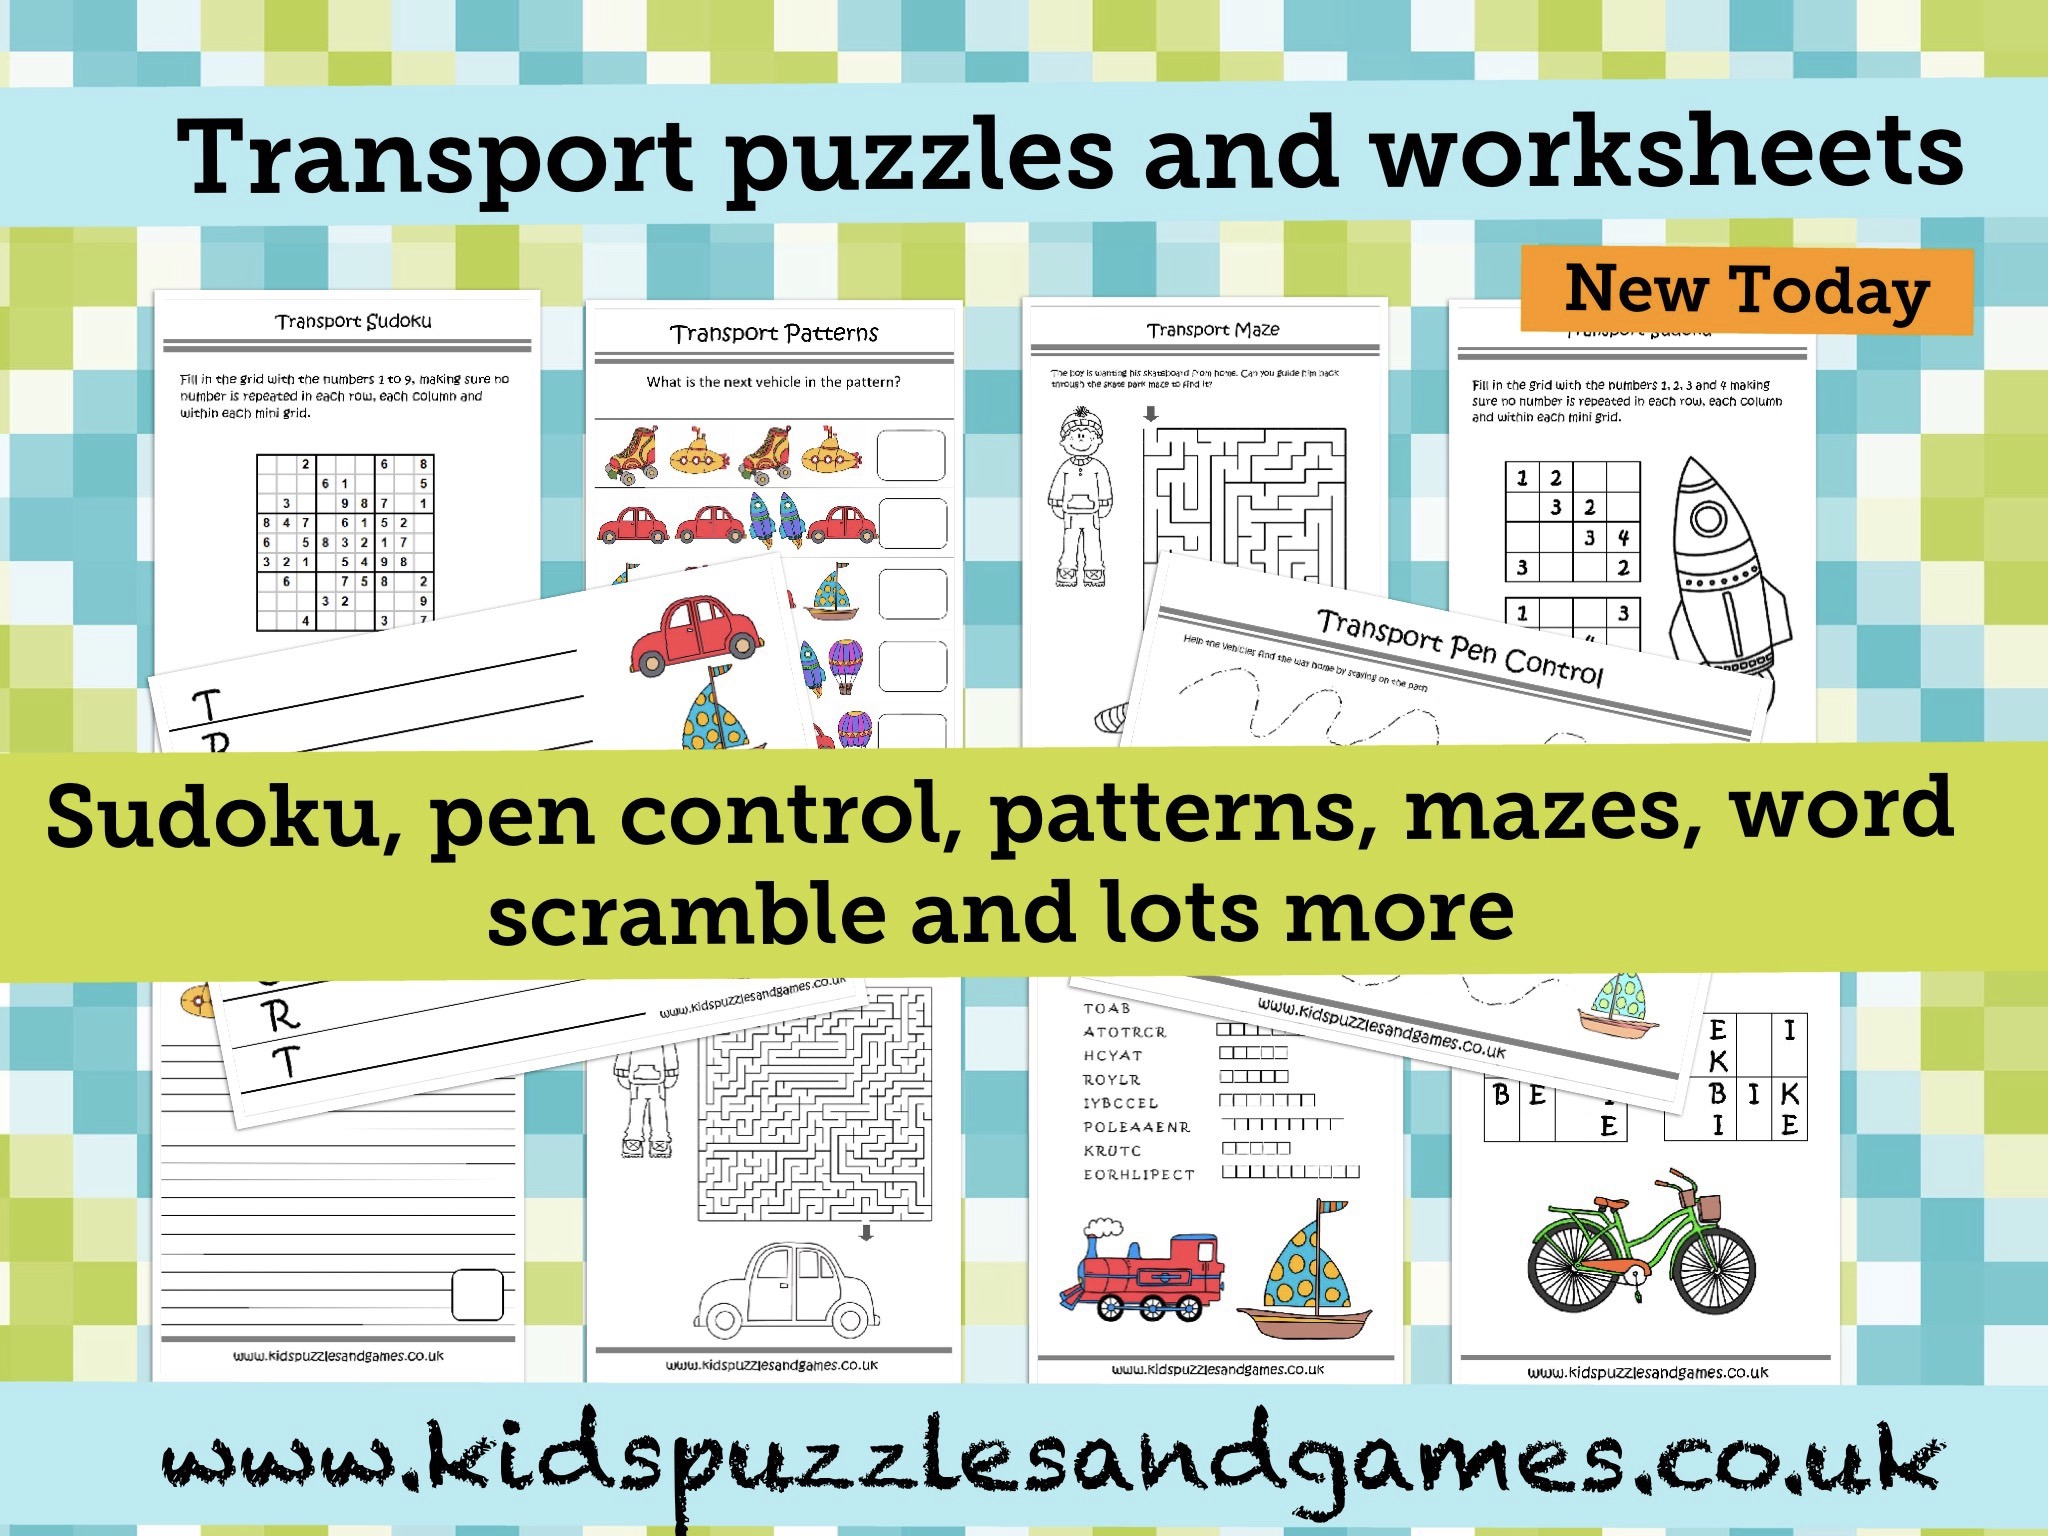 Welcome To Kids Puzzles And Games - Printable Transportation Puzzles